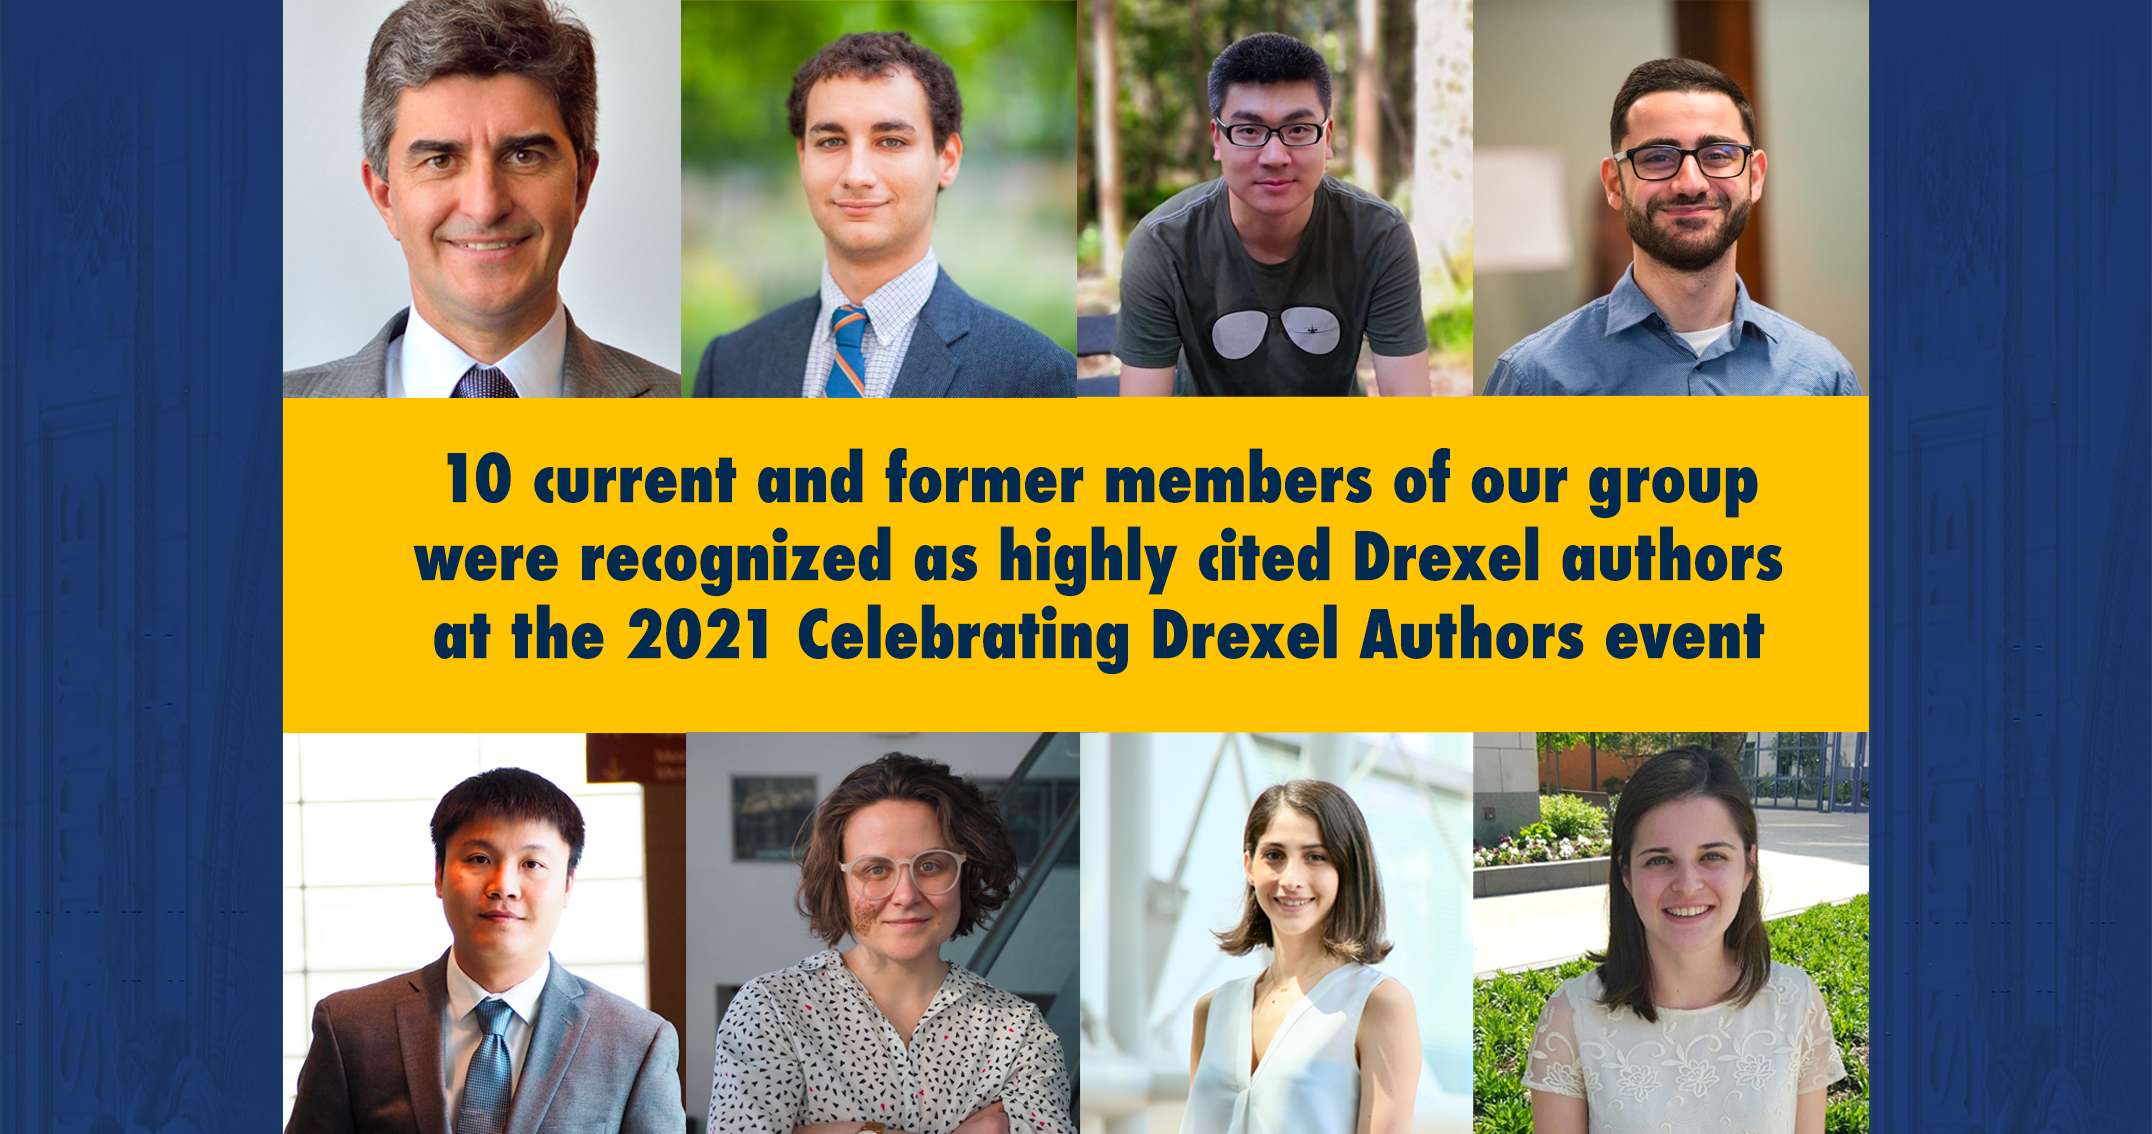 10 Current and Former Members of Our Group Were Recognized as Highly Cited Drexel Authors at the 2021 Celebrating Drexel Author Event